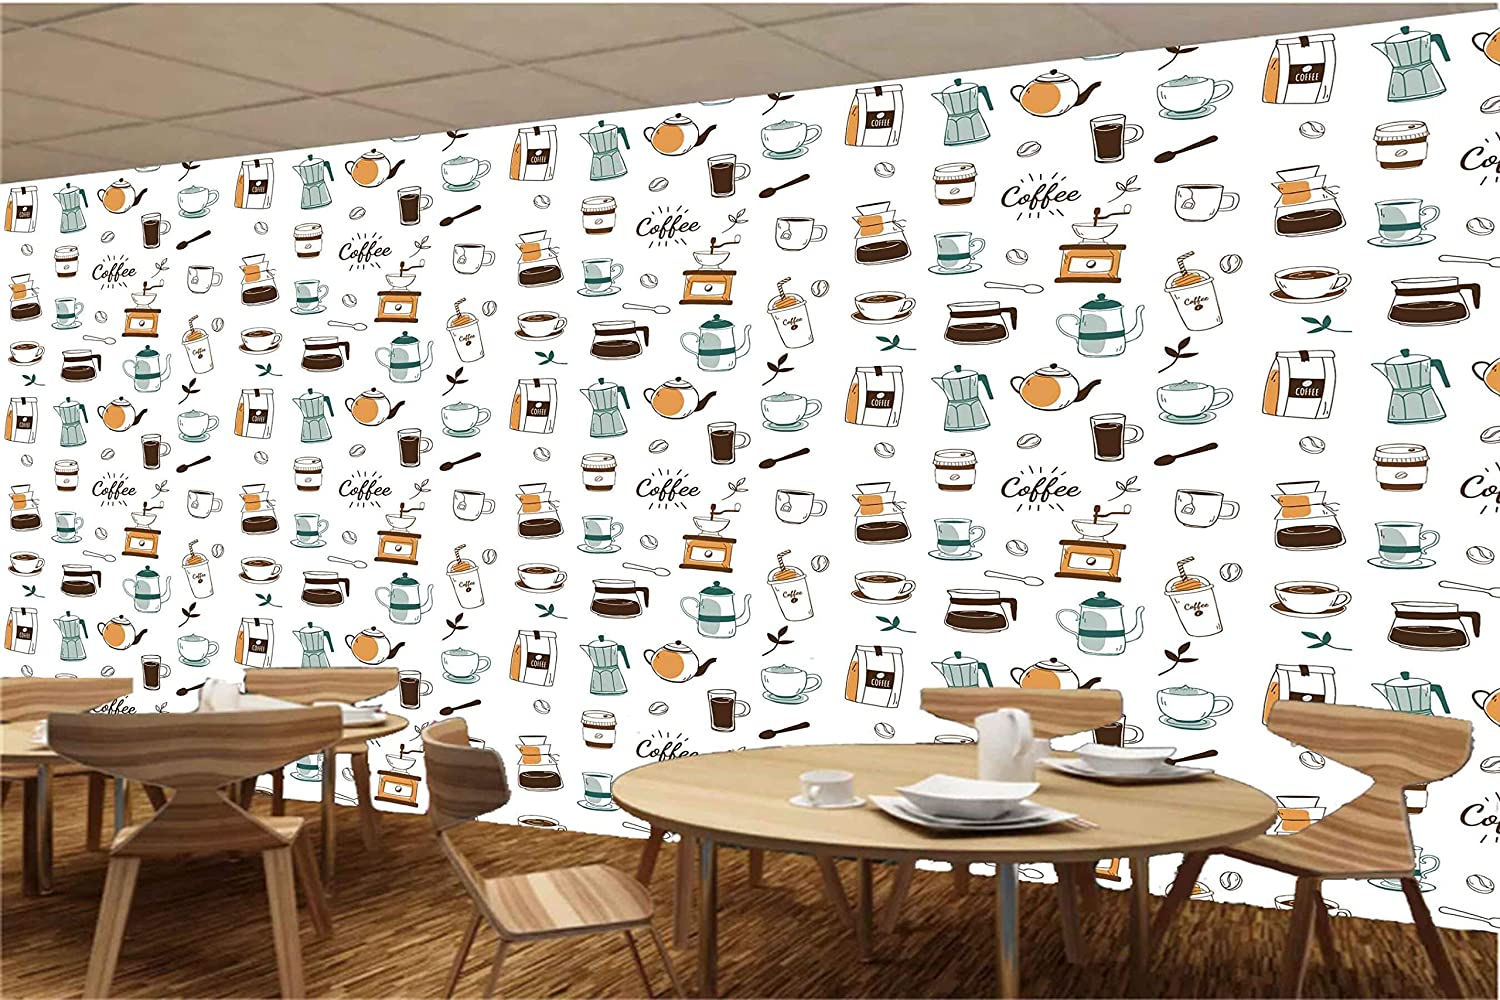 Buy Avikalp Self Adhesive Arw0143 Coffee Maker Leaves Seeds Packing Bags Cups Spoons Pots Hd Wallpaper For Coffee Shop 60cm X 914cm Online At Low Prices In India Amazon In